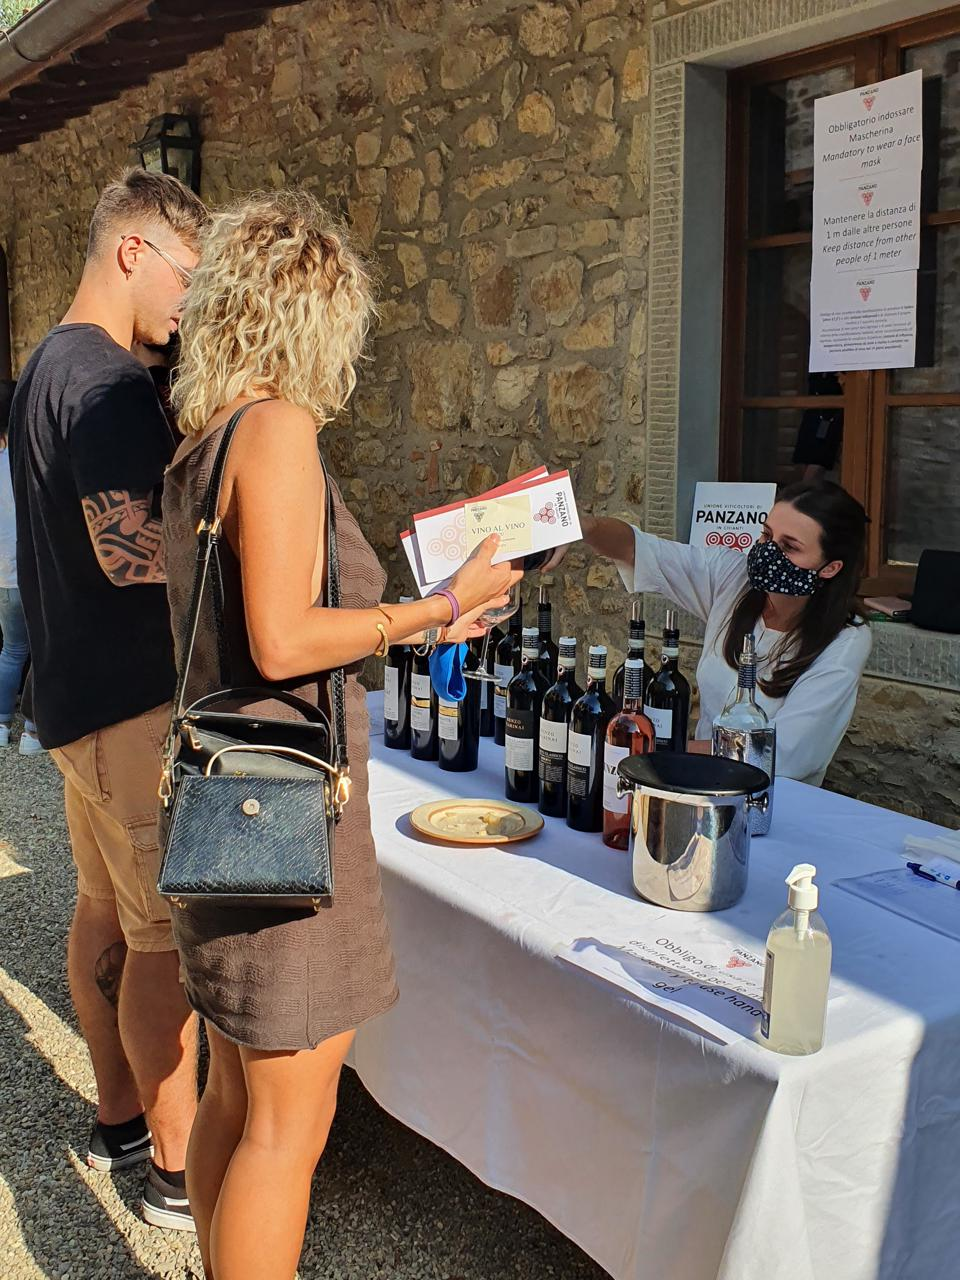 People line up at the tasting table at Vino Al Vino festival in Panzano in Chianti Italy